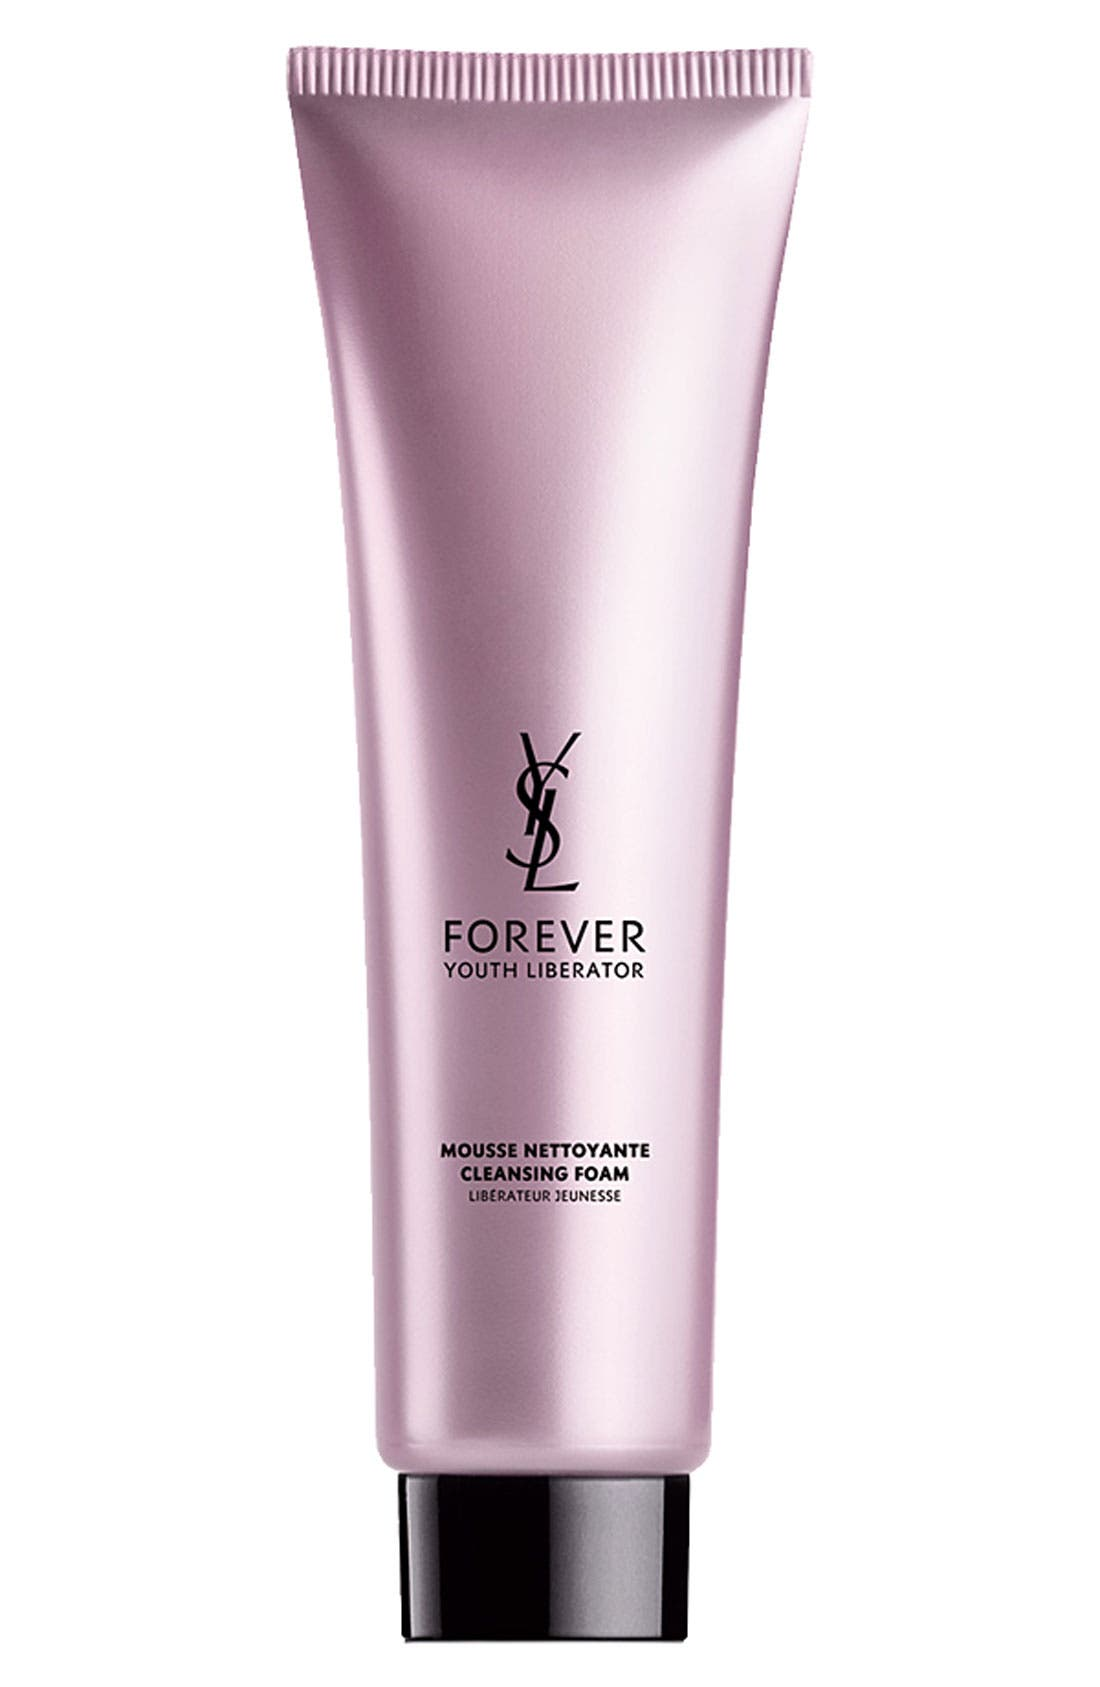 Yves Saint Laurent 'Forever Youth Liberator' Cleansing Foam